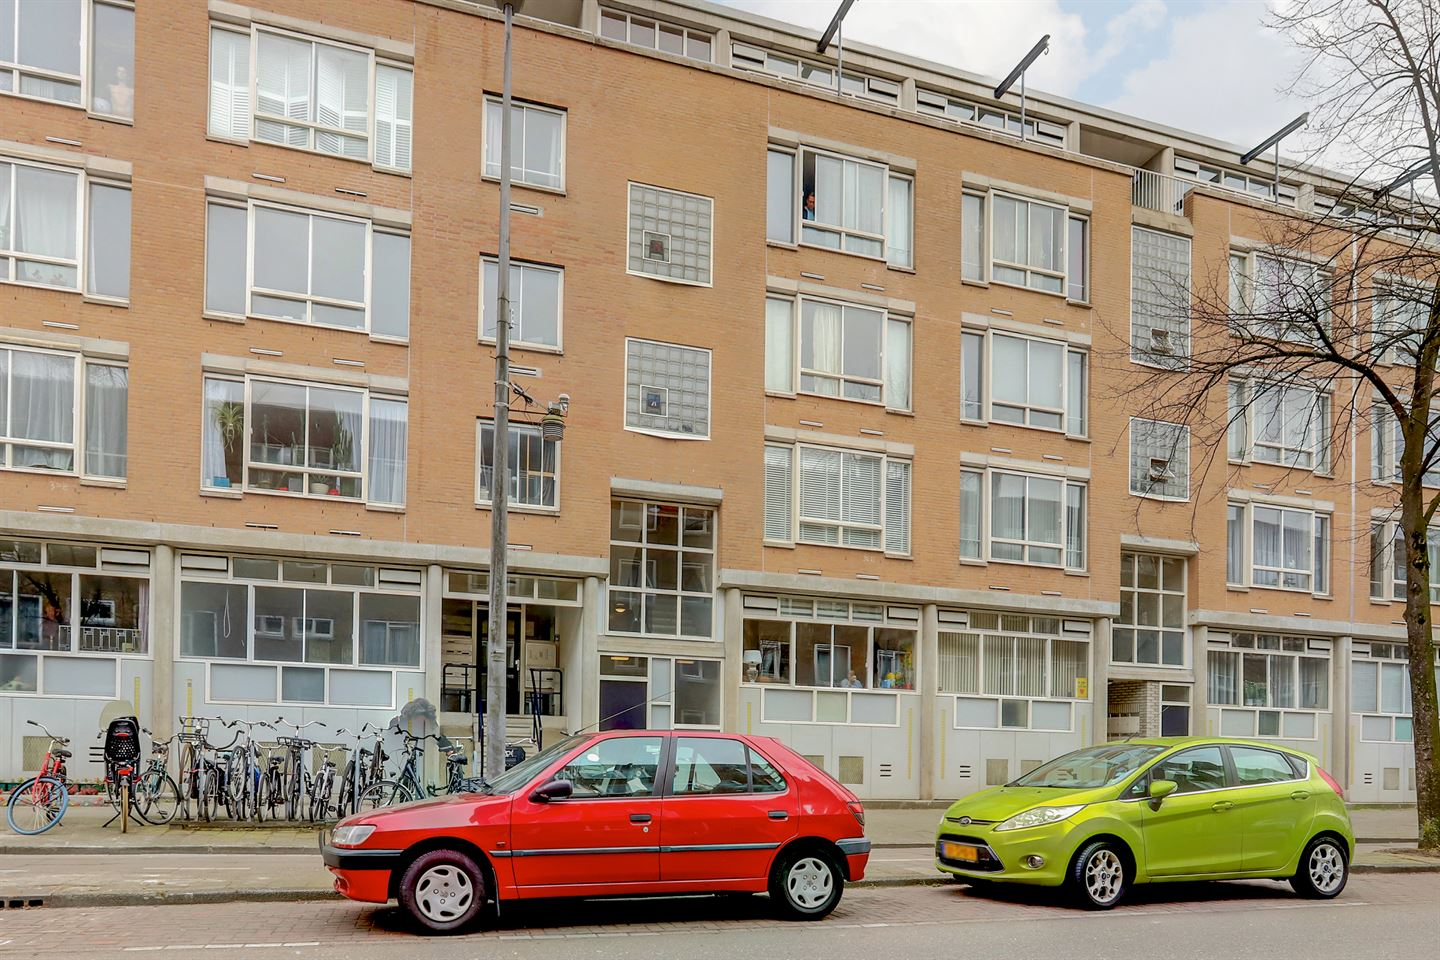 View photo 2 of Lutmastraat 34 -A